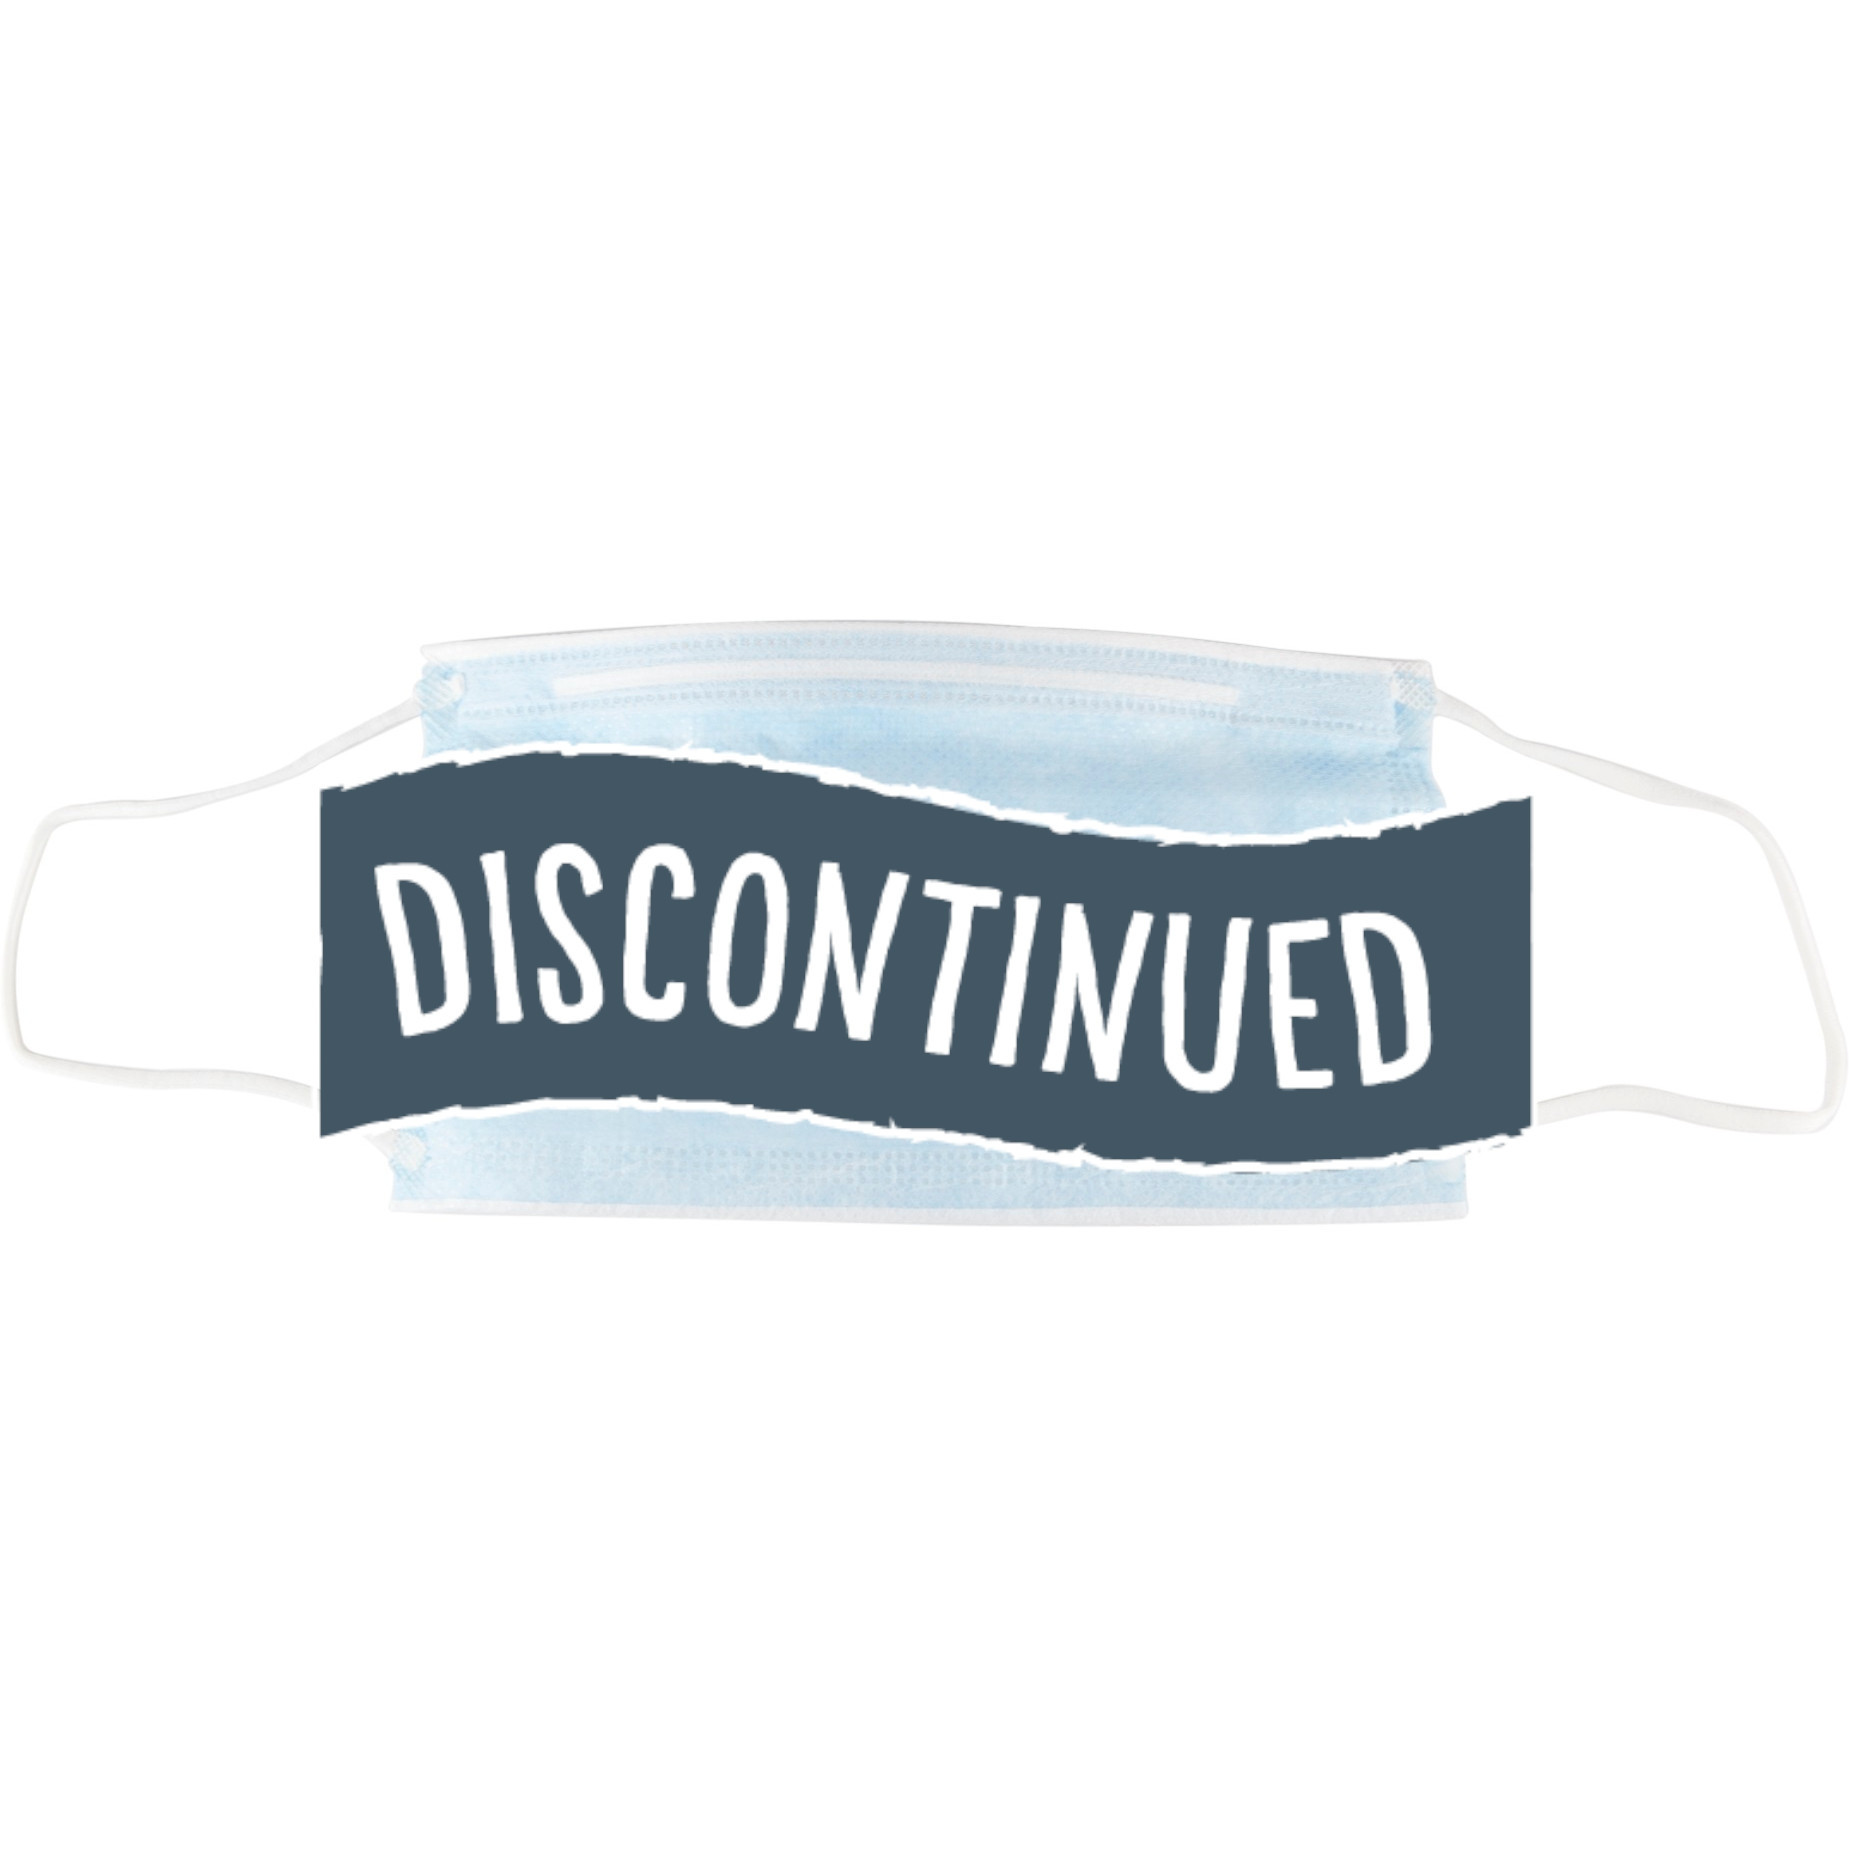 (Discontinued) Standard Disposable Face Mask, 50/box